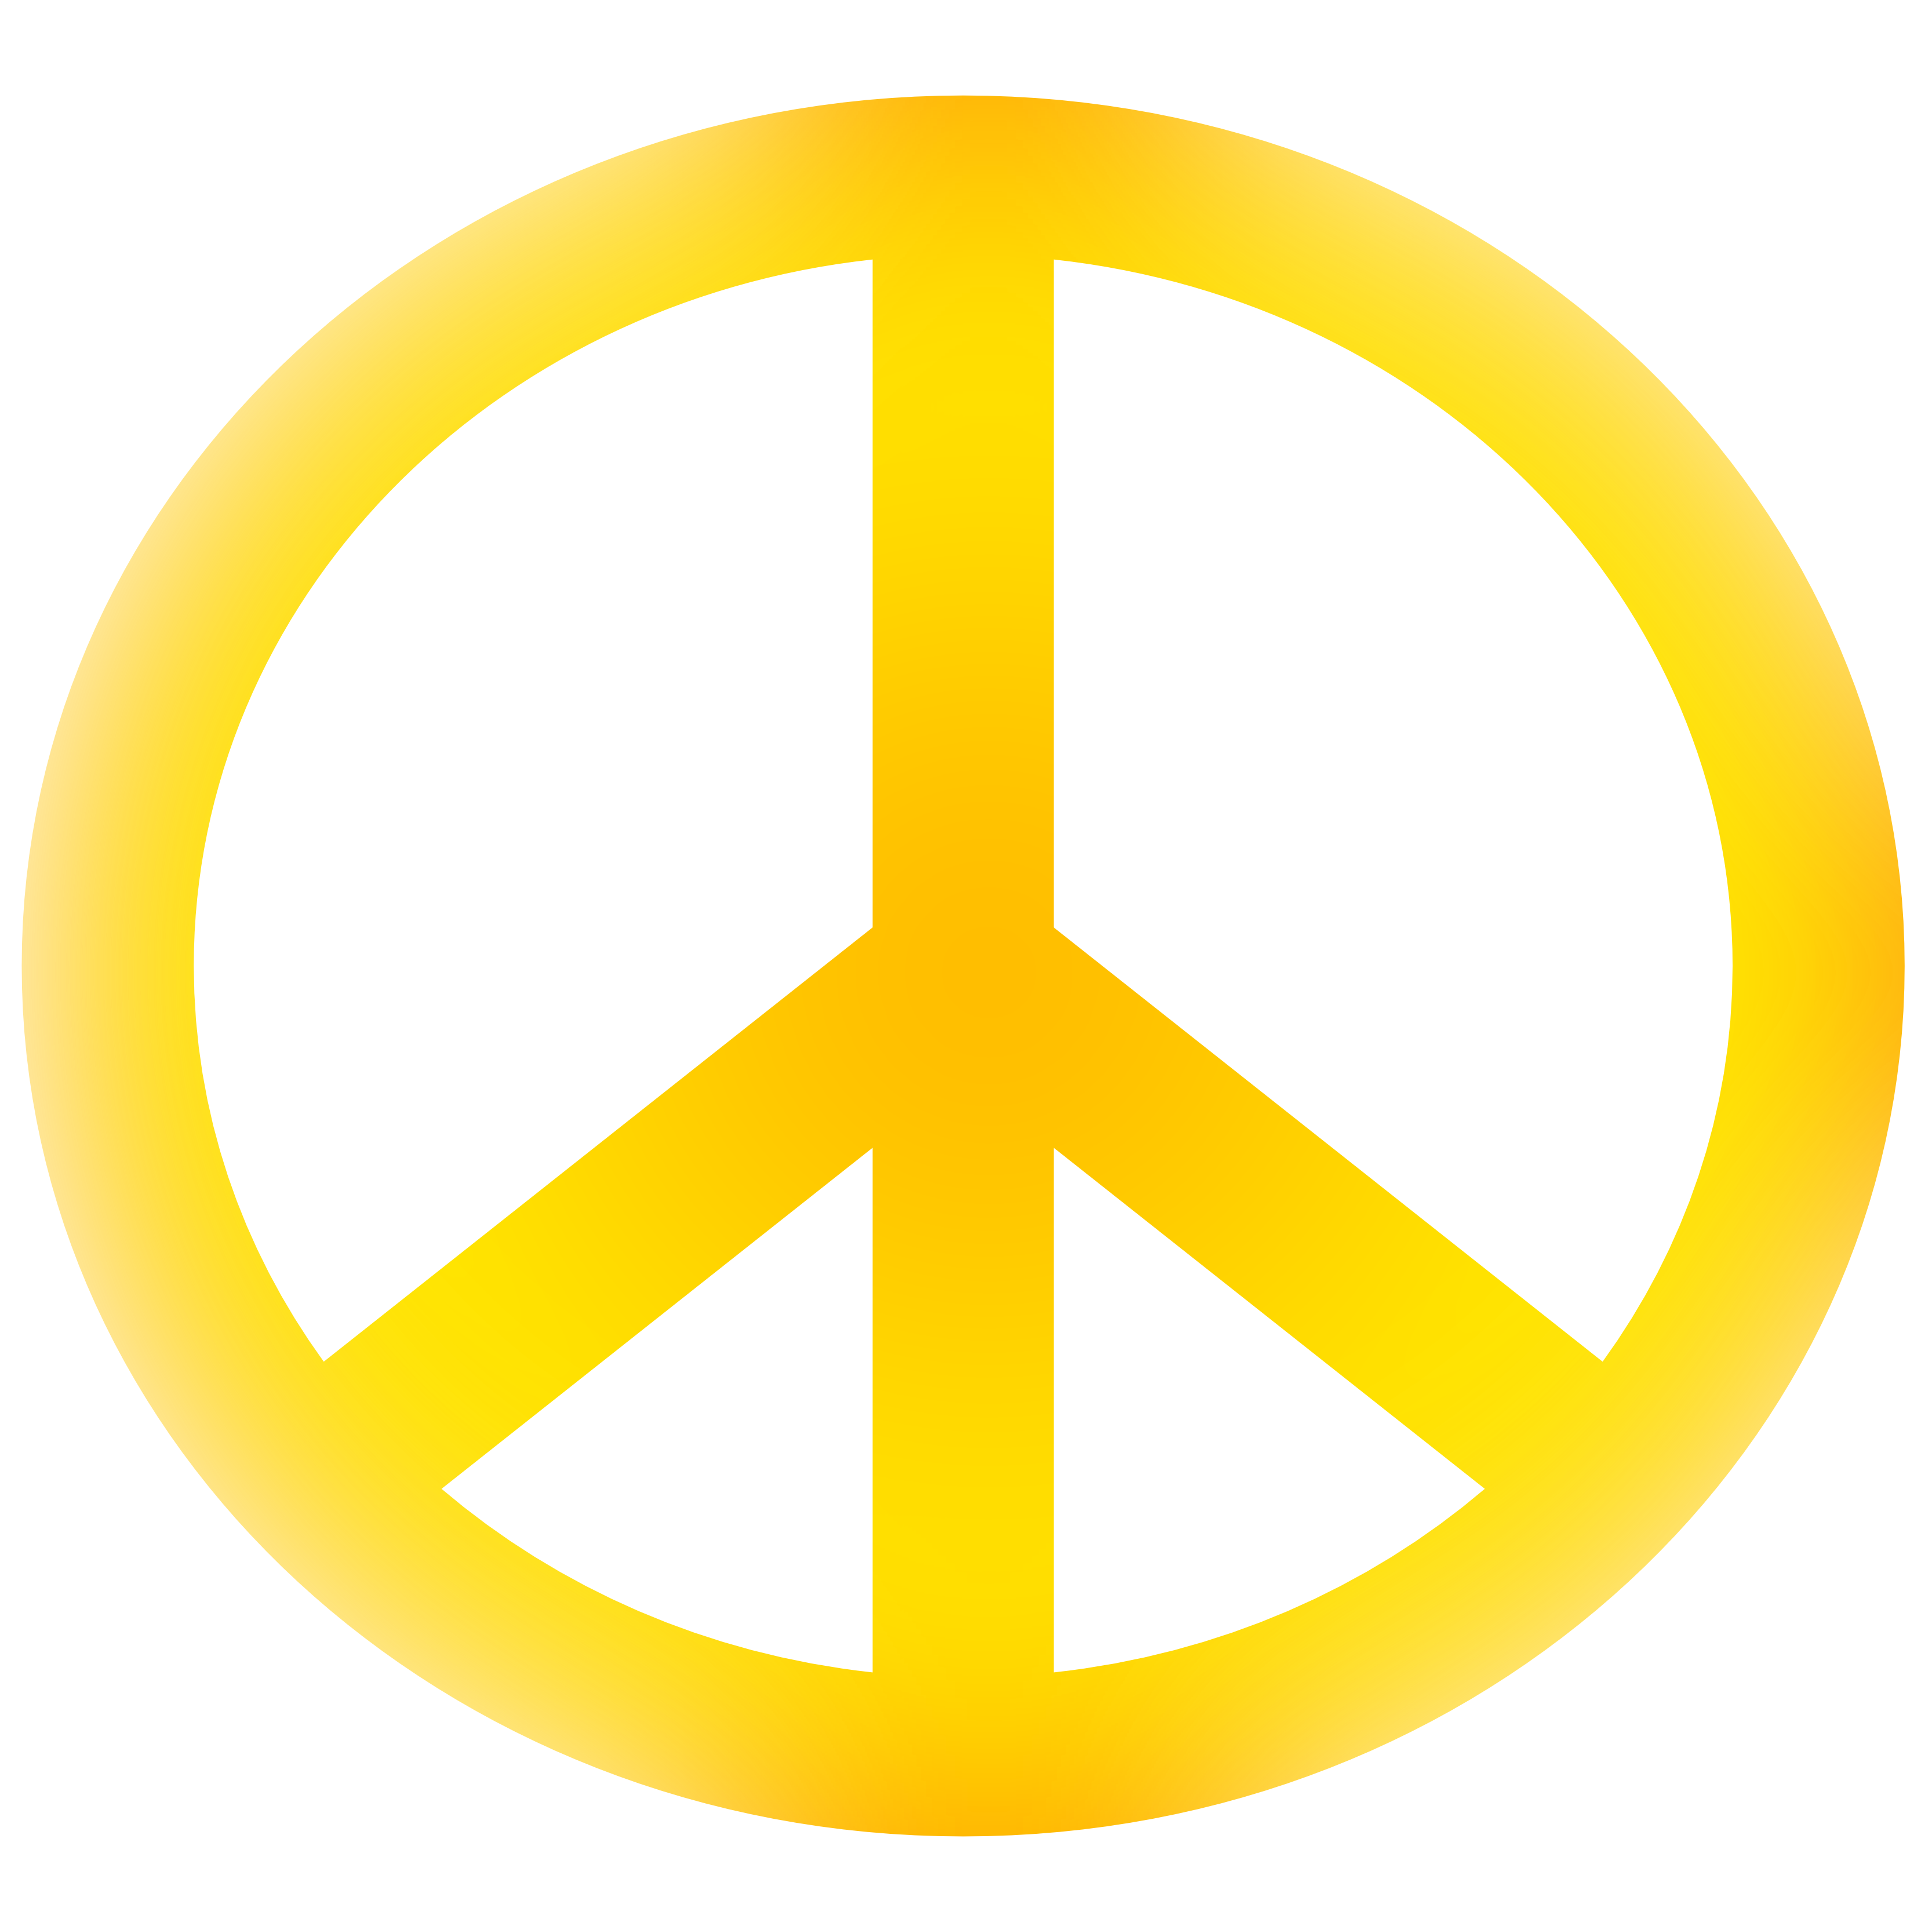 Free Peace Sign Transparent, Download Free Clip Art, Free.